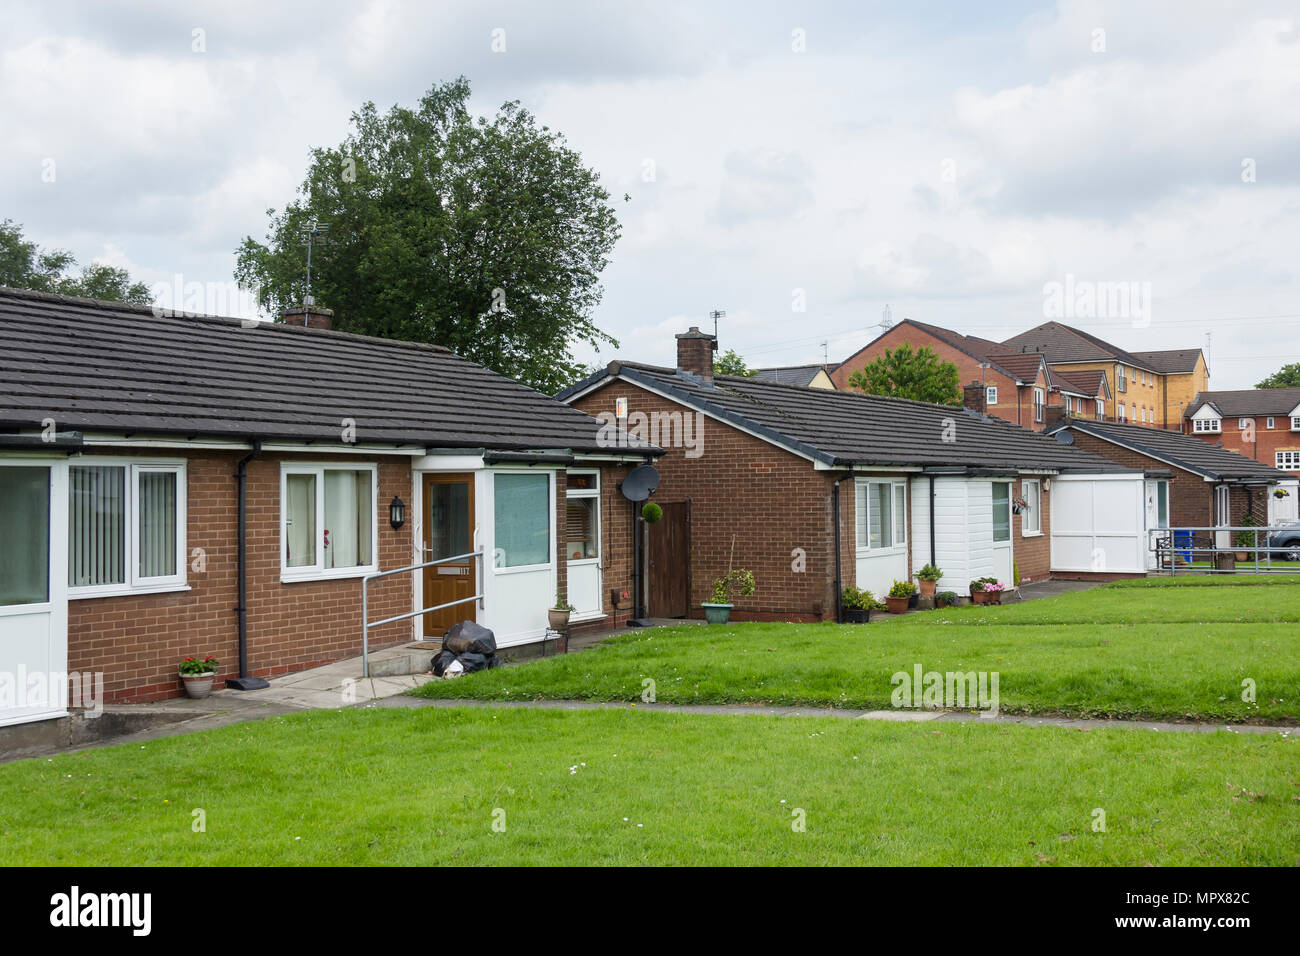 Bungalows in Walkden, Greater Manchester. Late 20th century build bungalows, some adapted to give disability ramps level access with handrail. - Stock Image